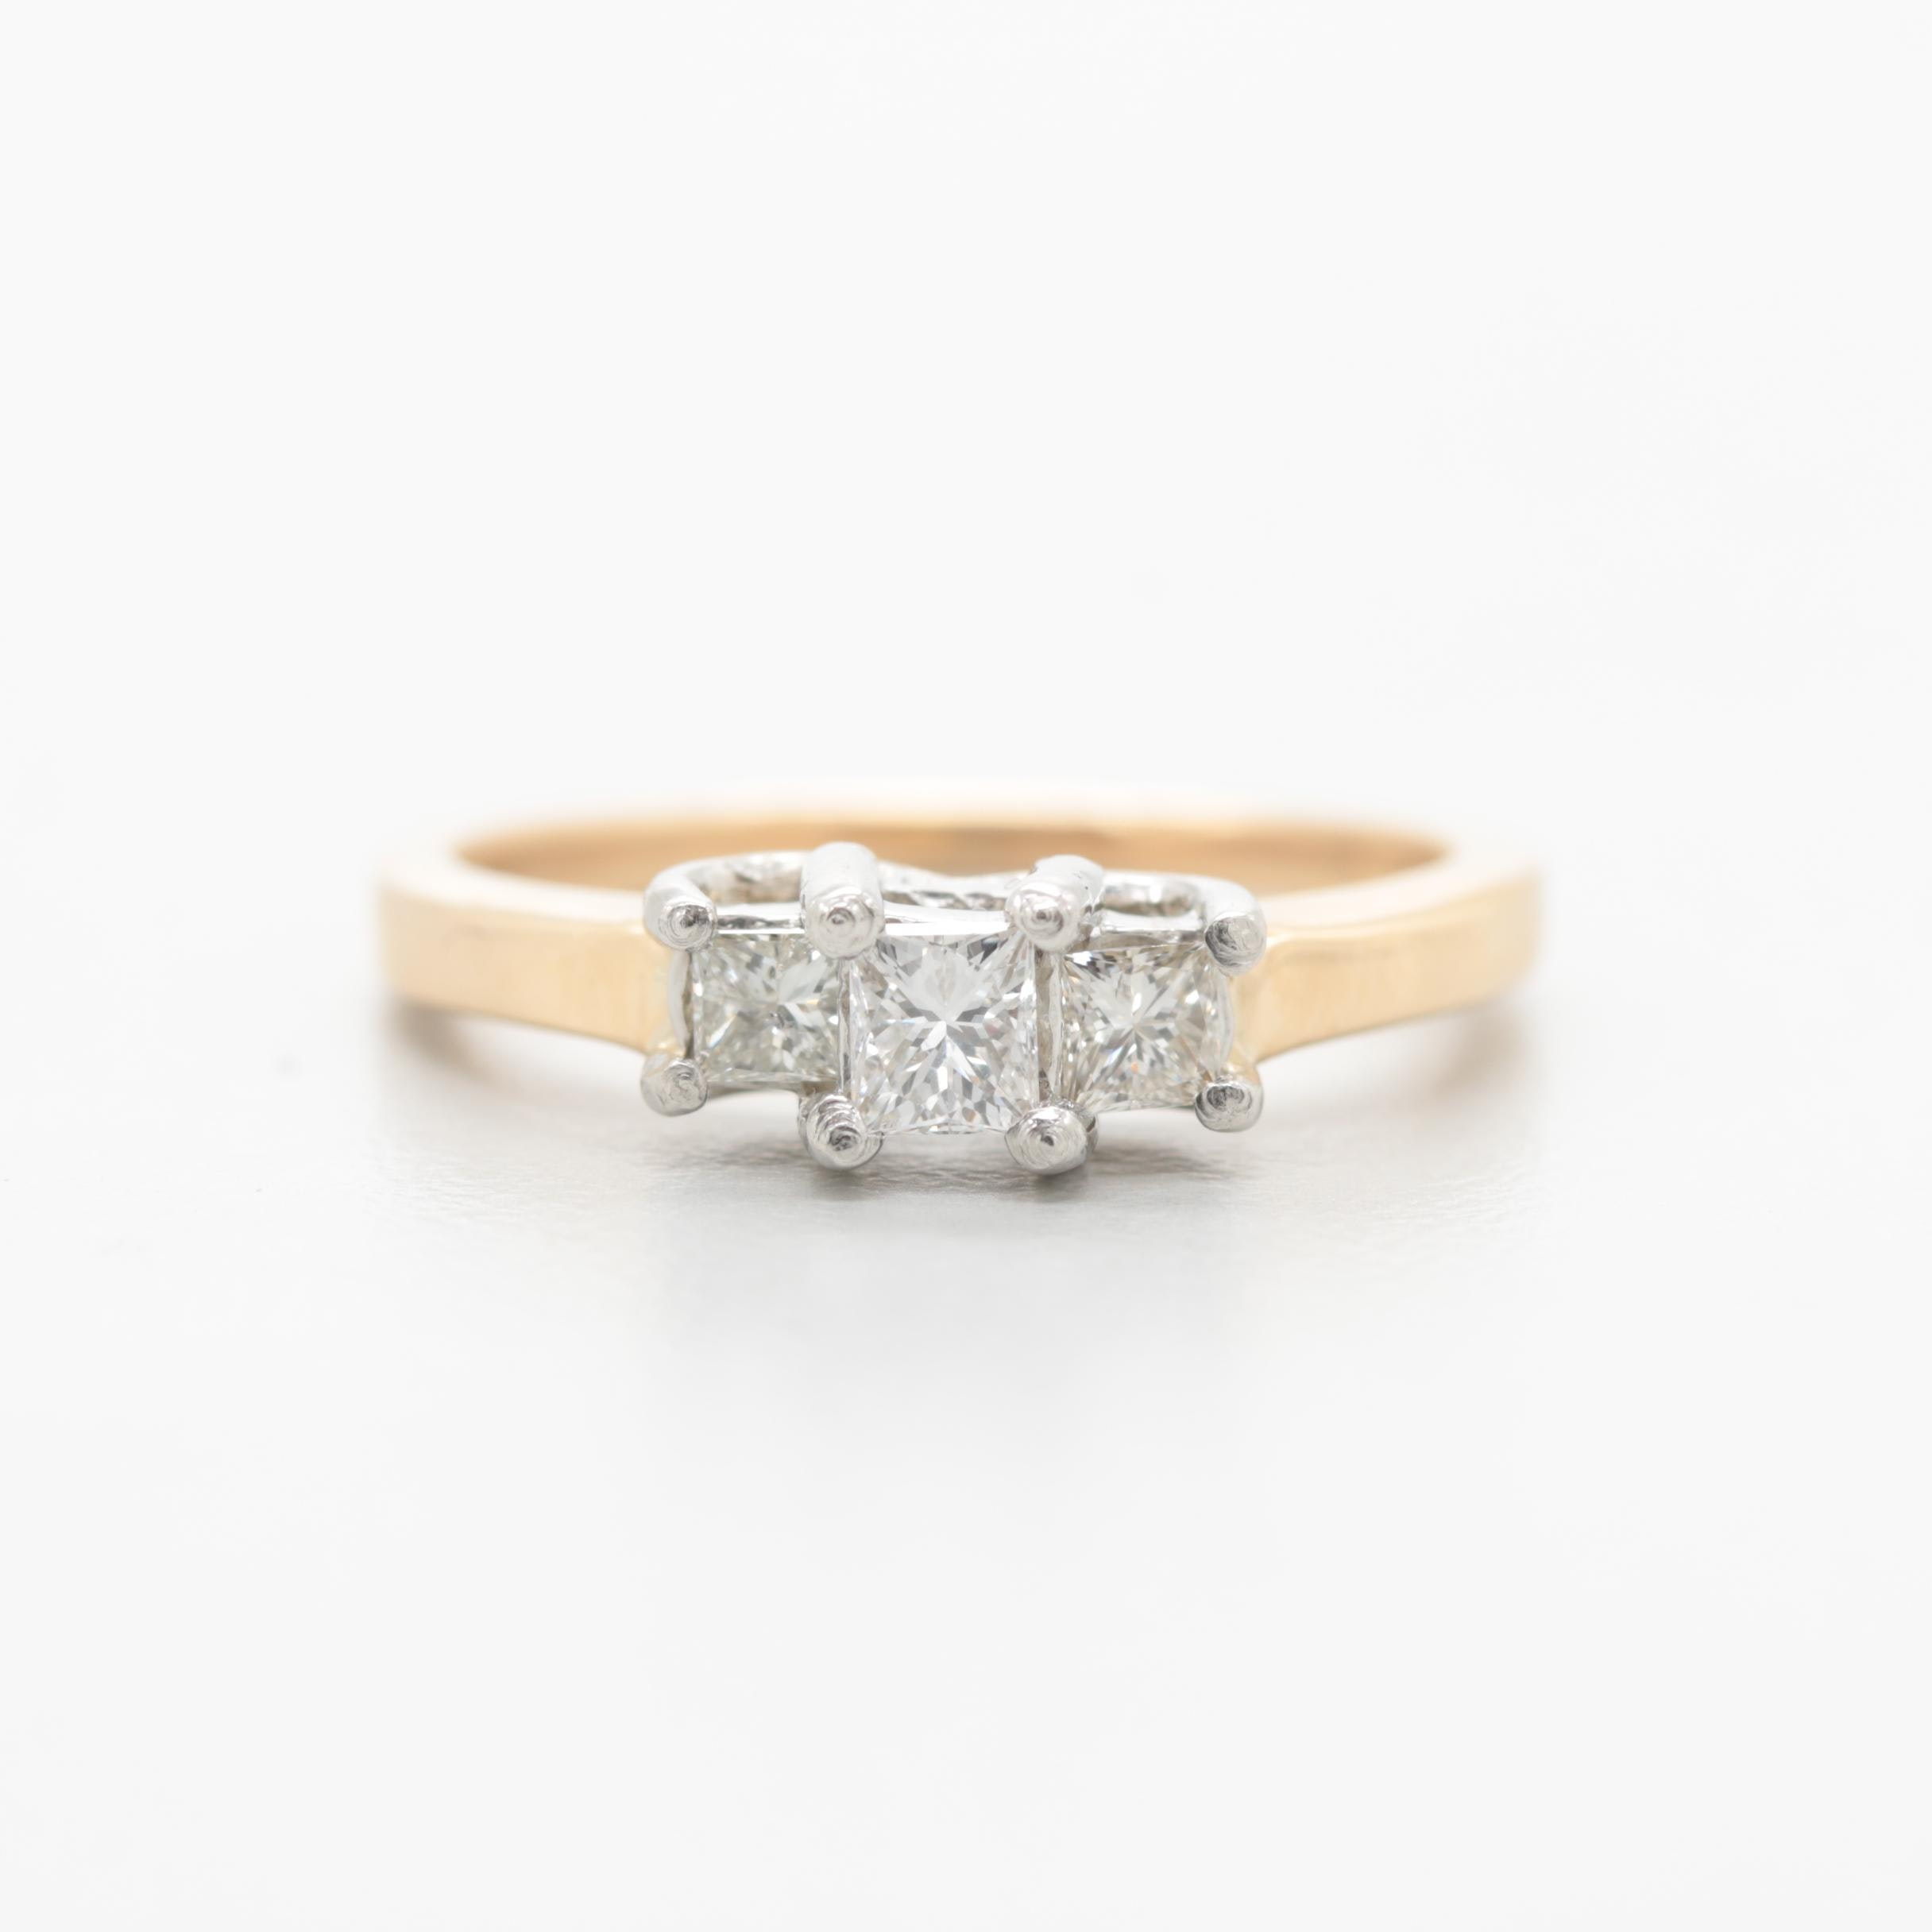 14K Yellow Gold Diamond Ring with Platinum Accents